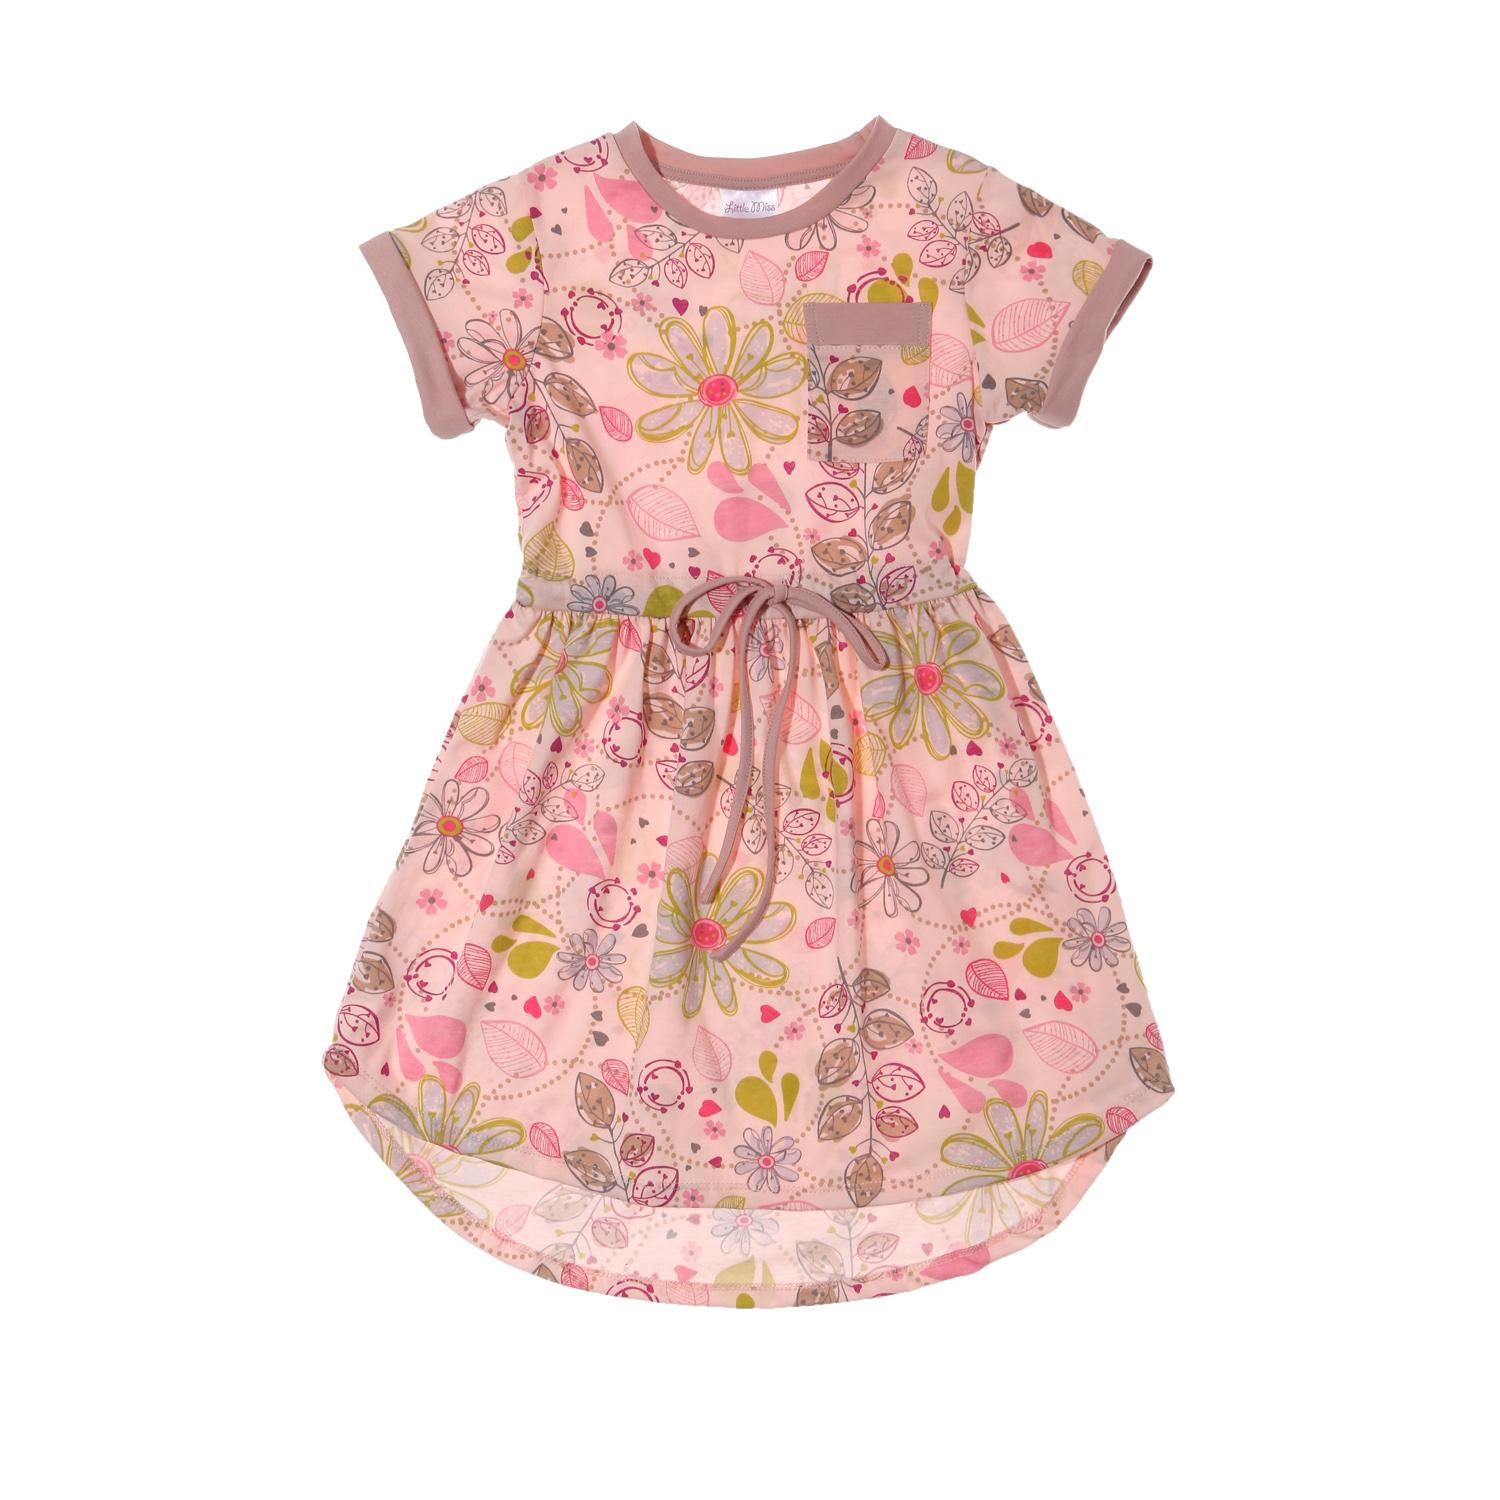 8b413e234dd7 Girls Dresses for sale - Baby Dresses for Girls online brands ...